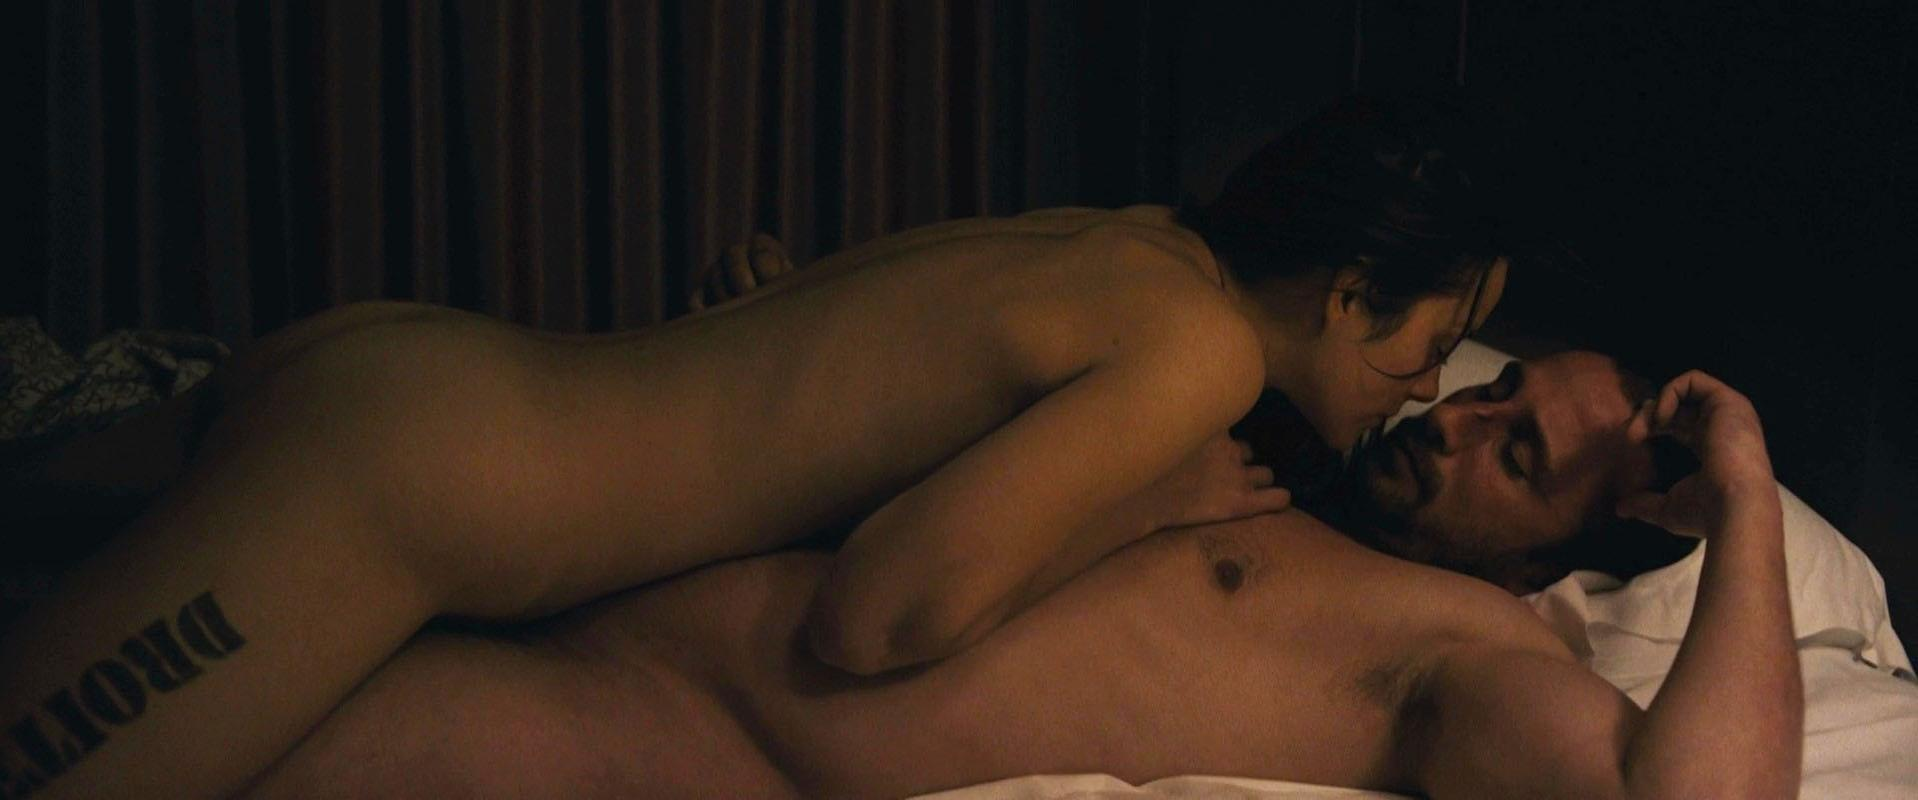 Marion Cotillard nude - Rust and Bone (2012)